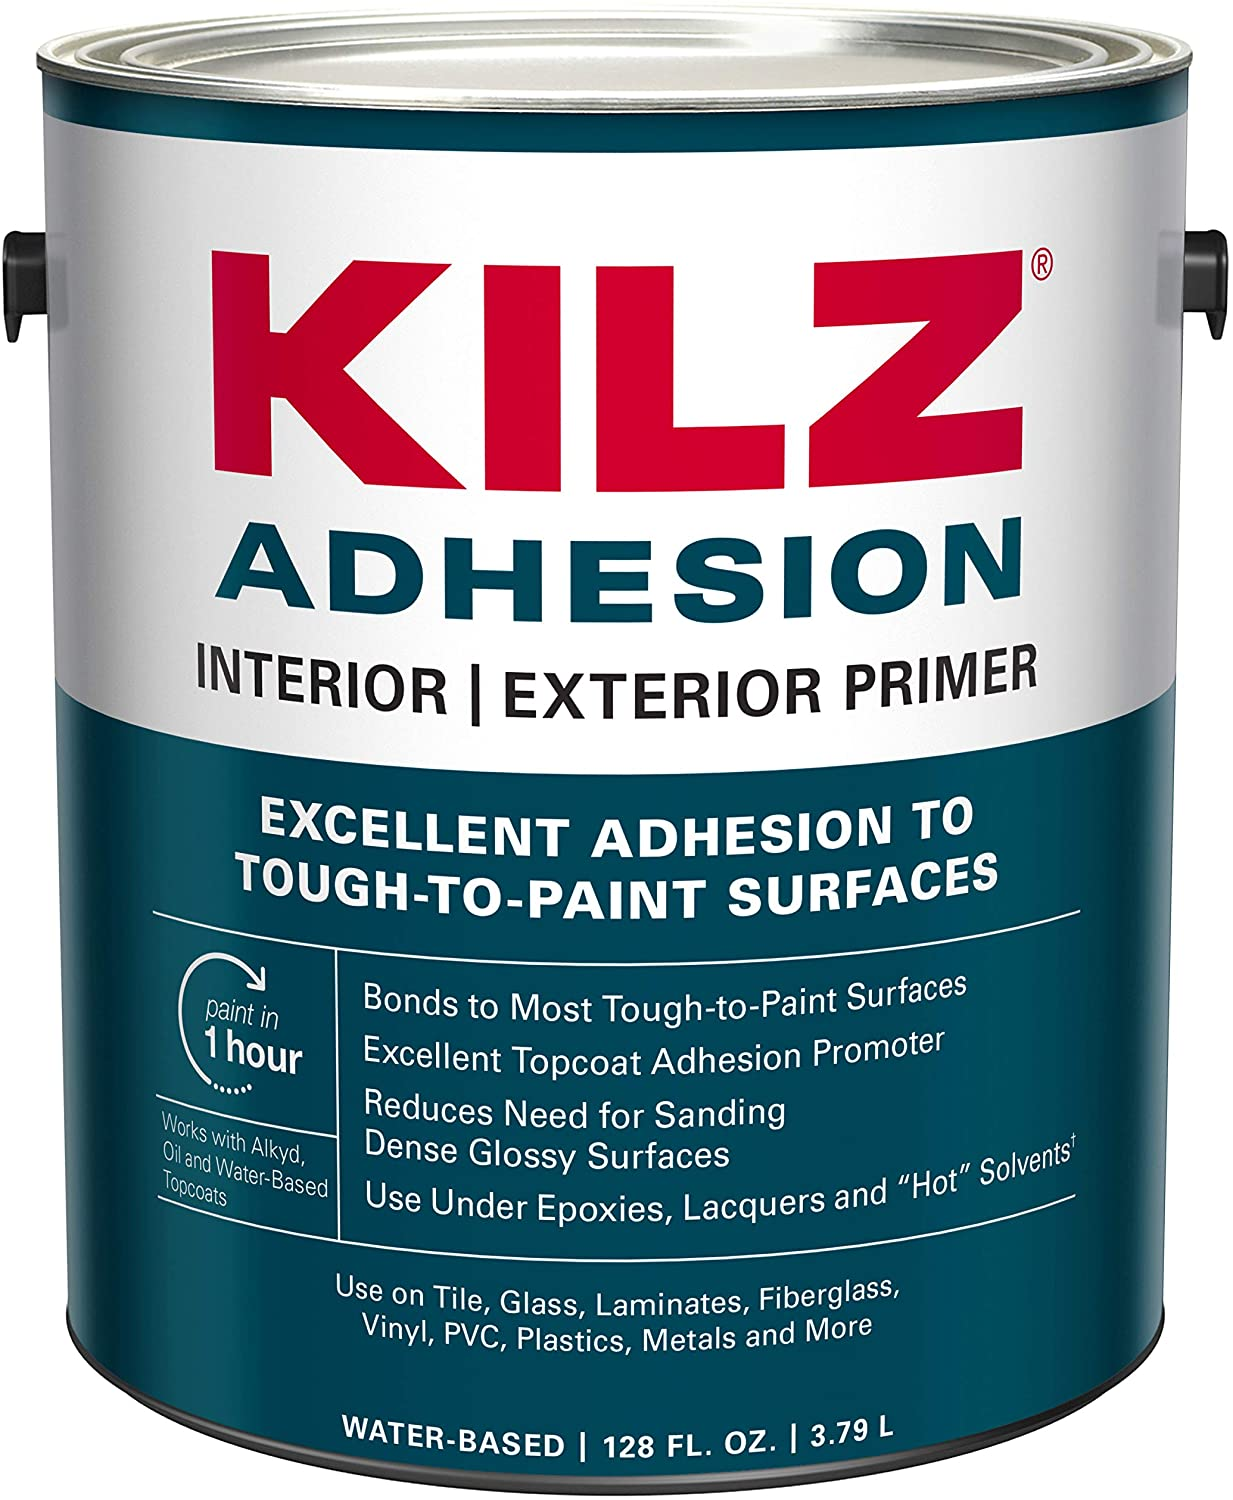 KILZ L211101 Adhesion High-Bonding Interior Latex Primer/Sealer, White, 1-Gallon, 1 Gallon, 4 l